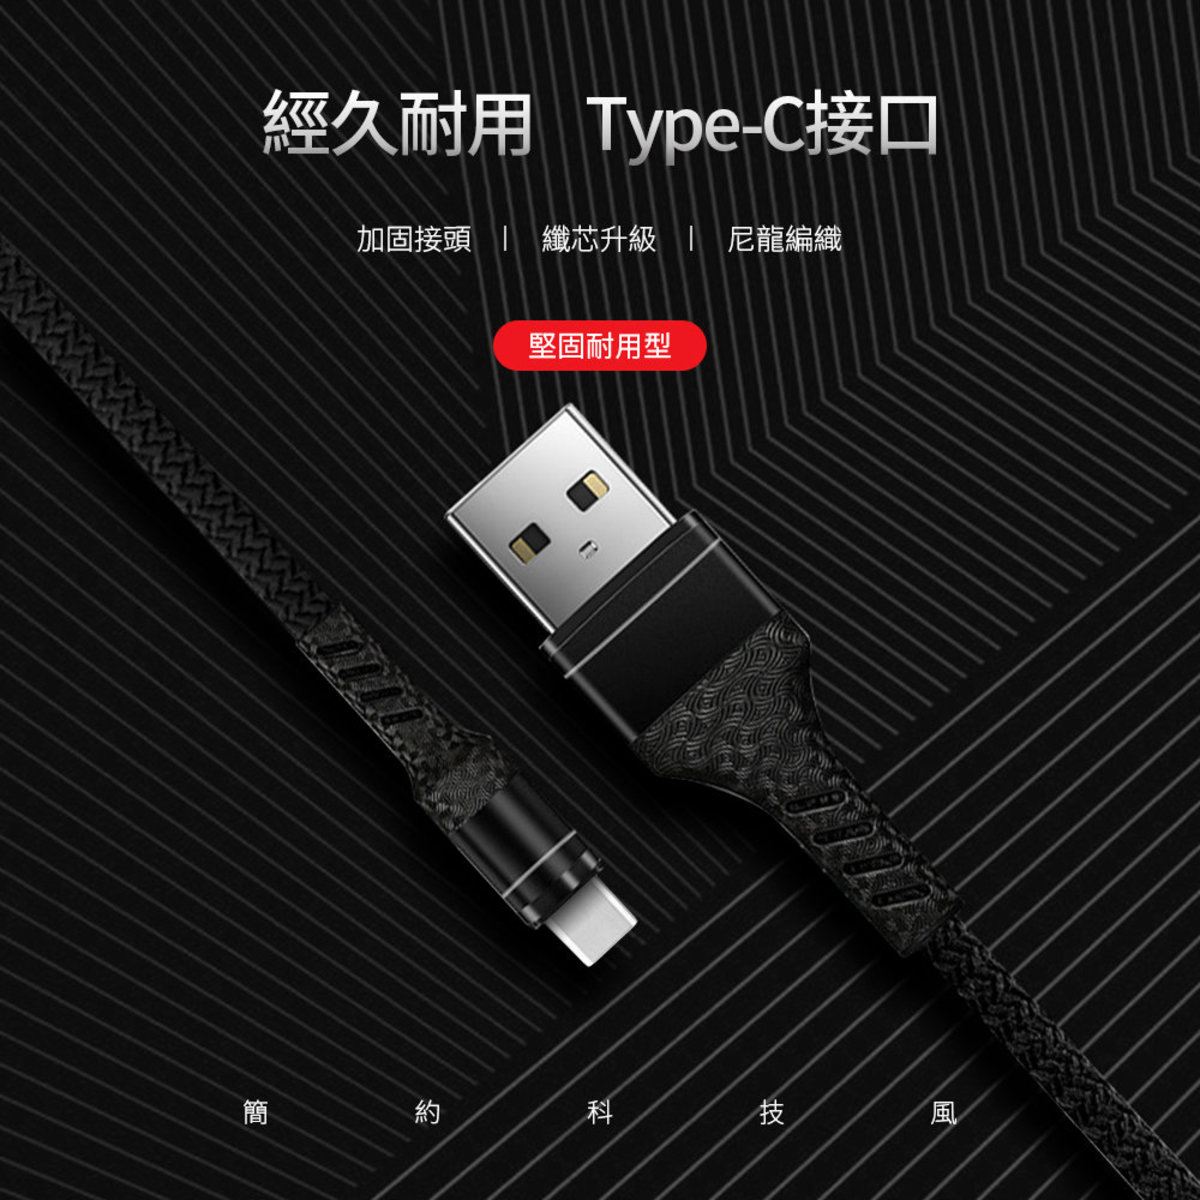 TYPE C 3A fast charge mobile phone and tablet universal data cable black